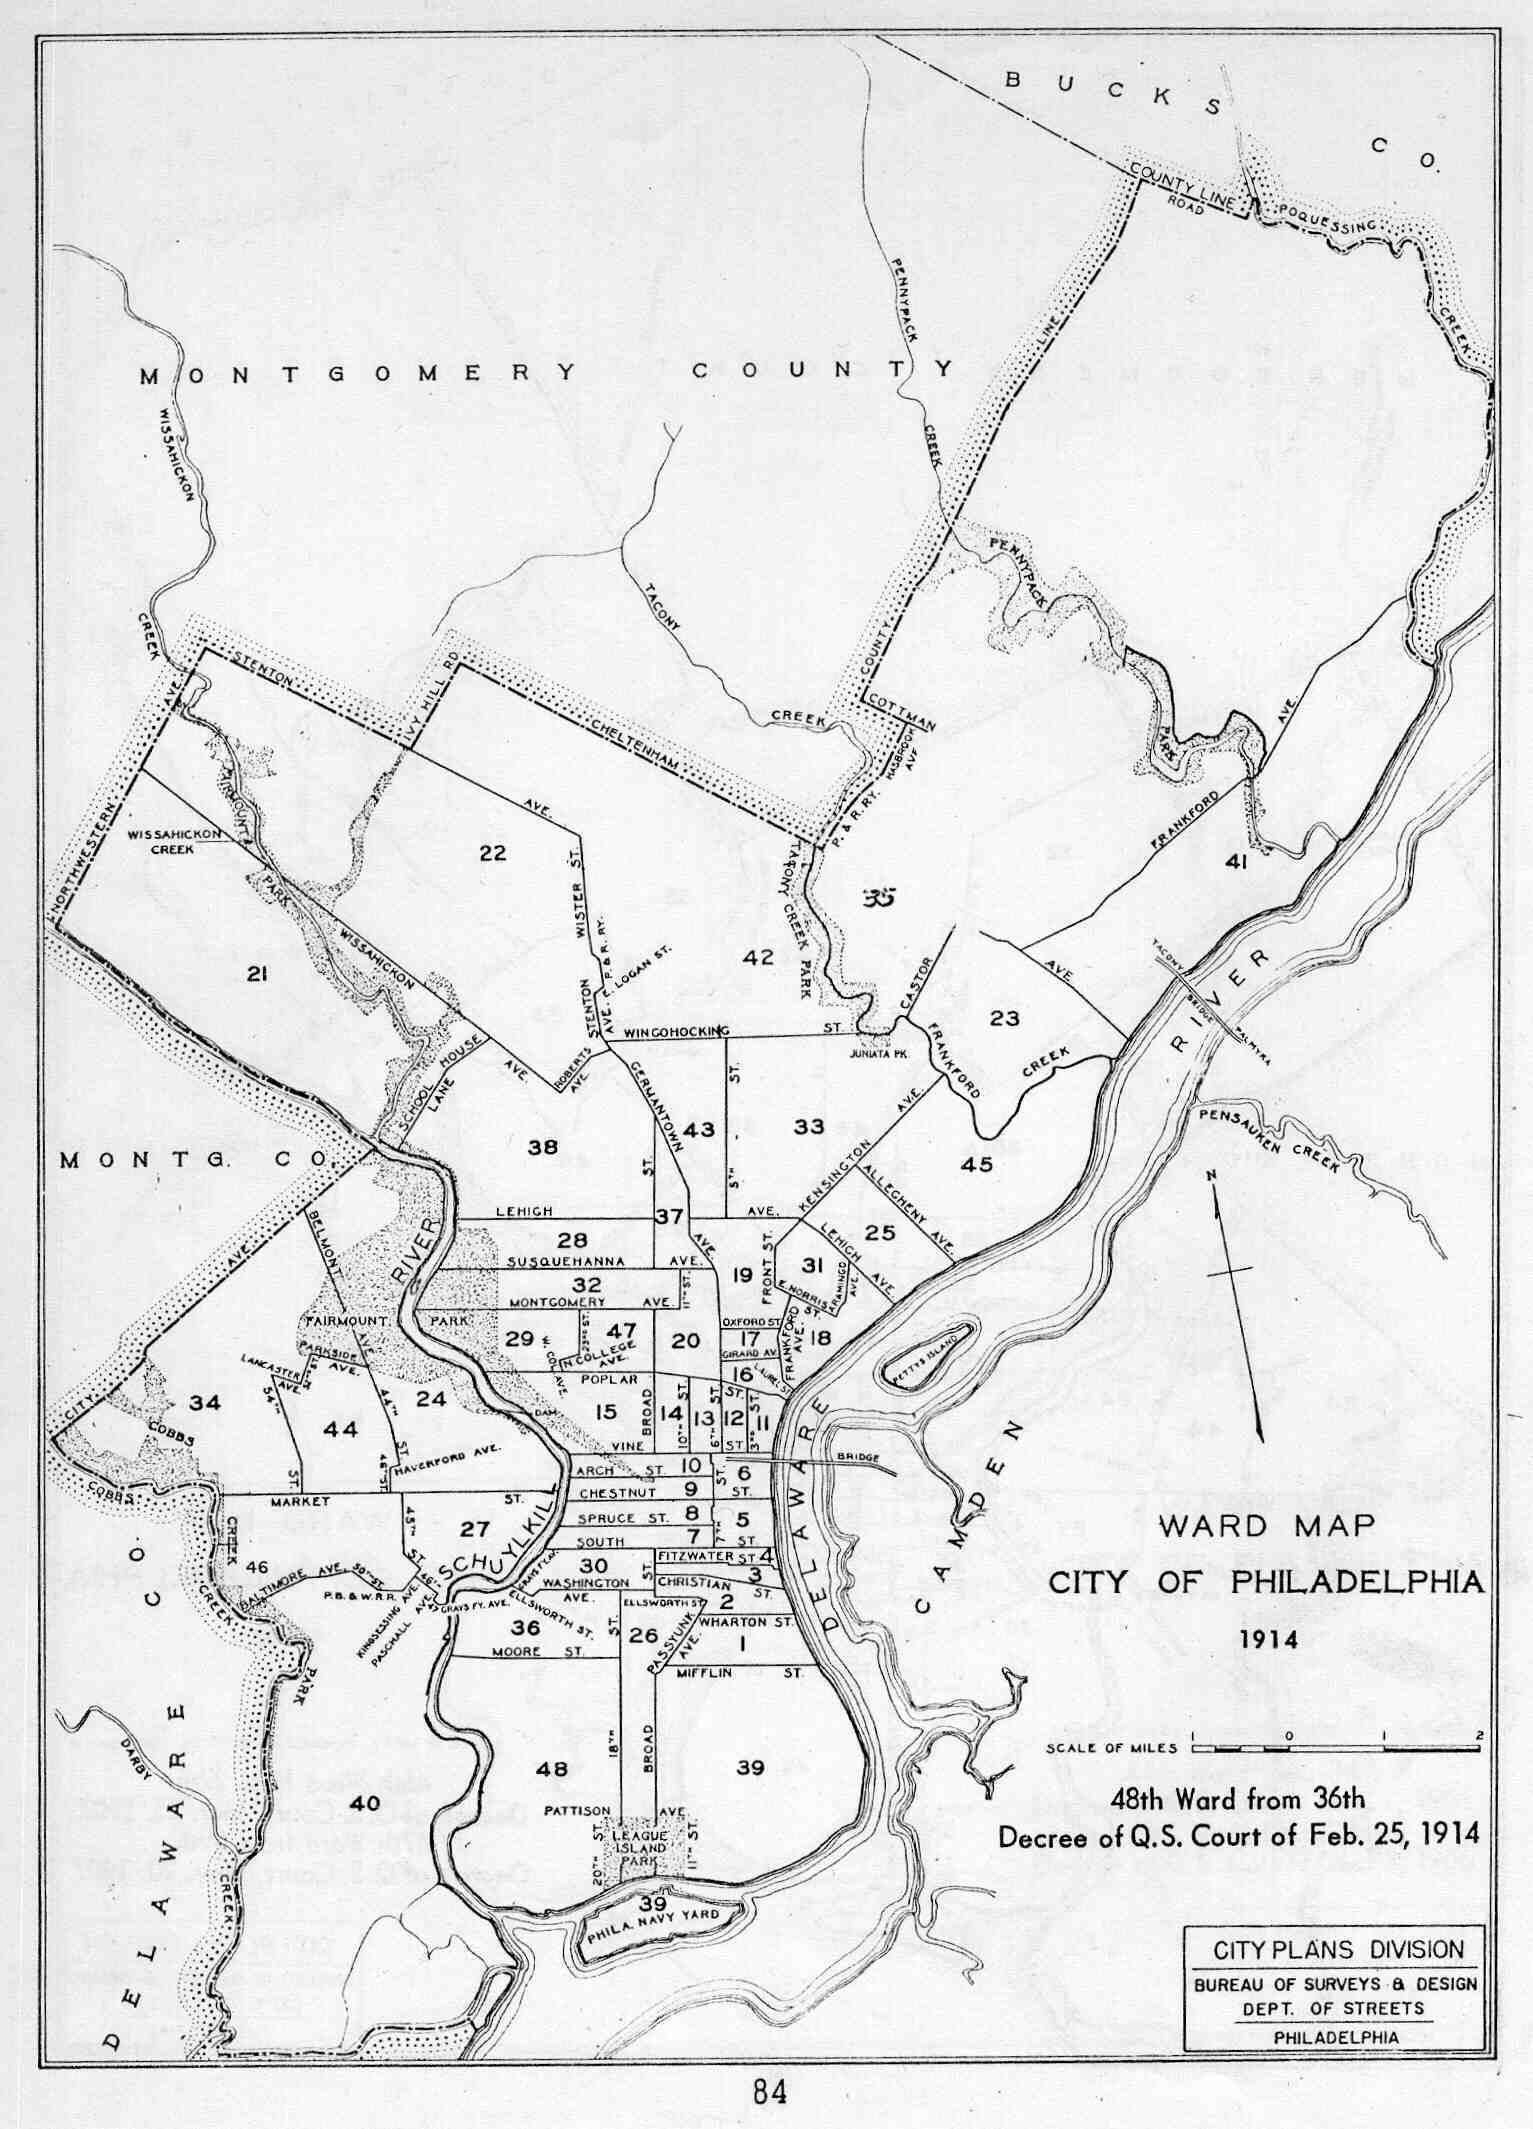 Phila_Old_Ward_Map.jpg